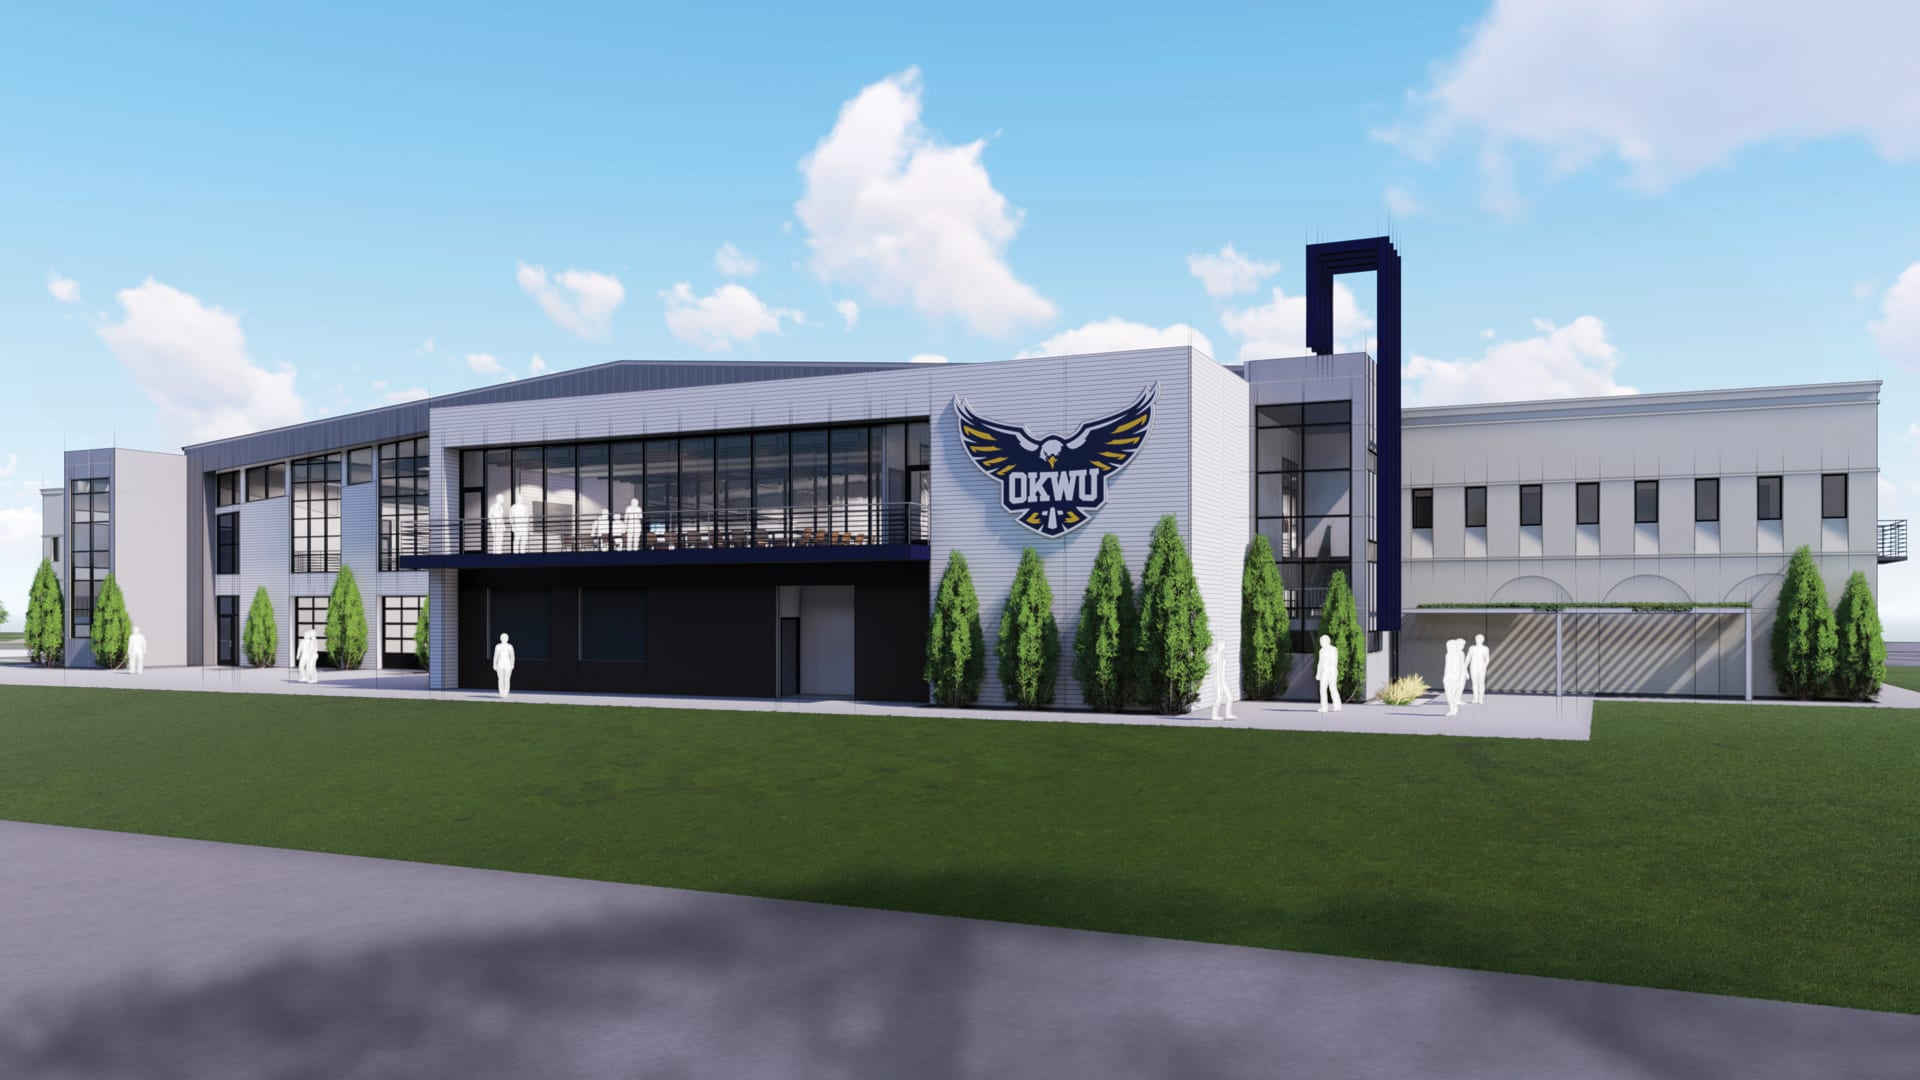 Rendering of field house exterior southwest view